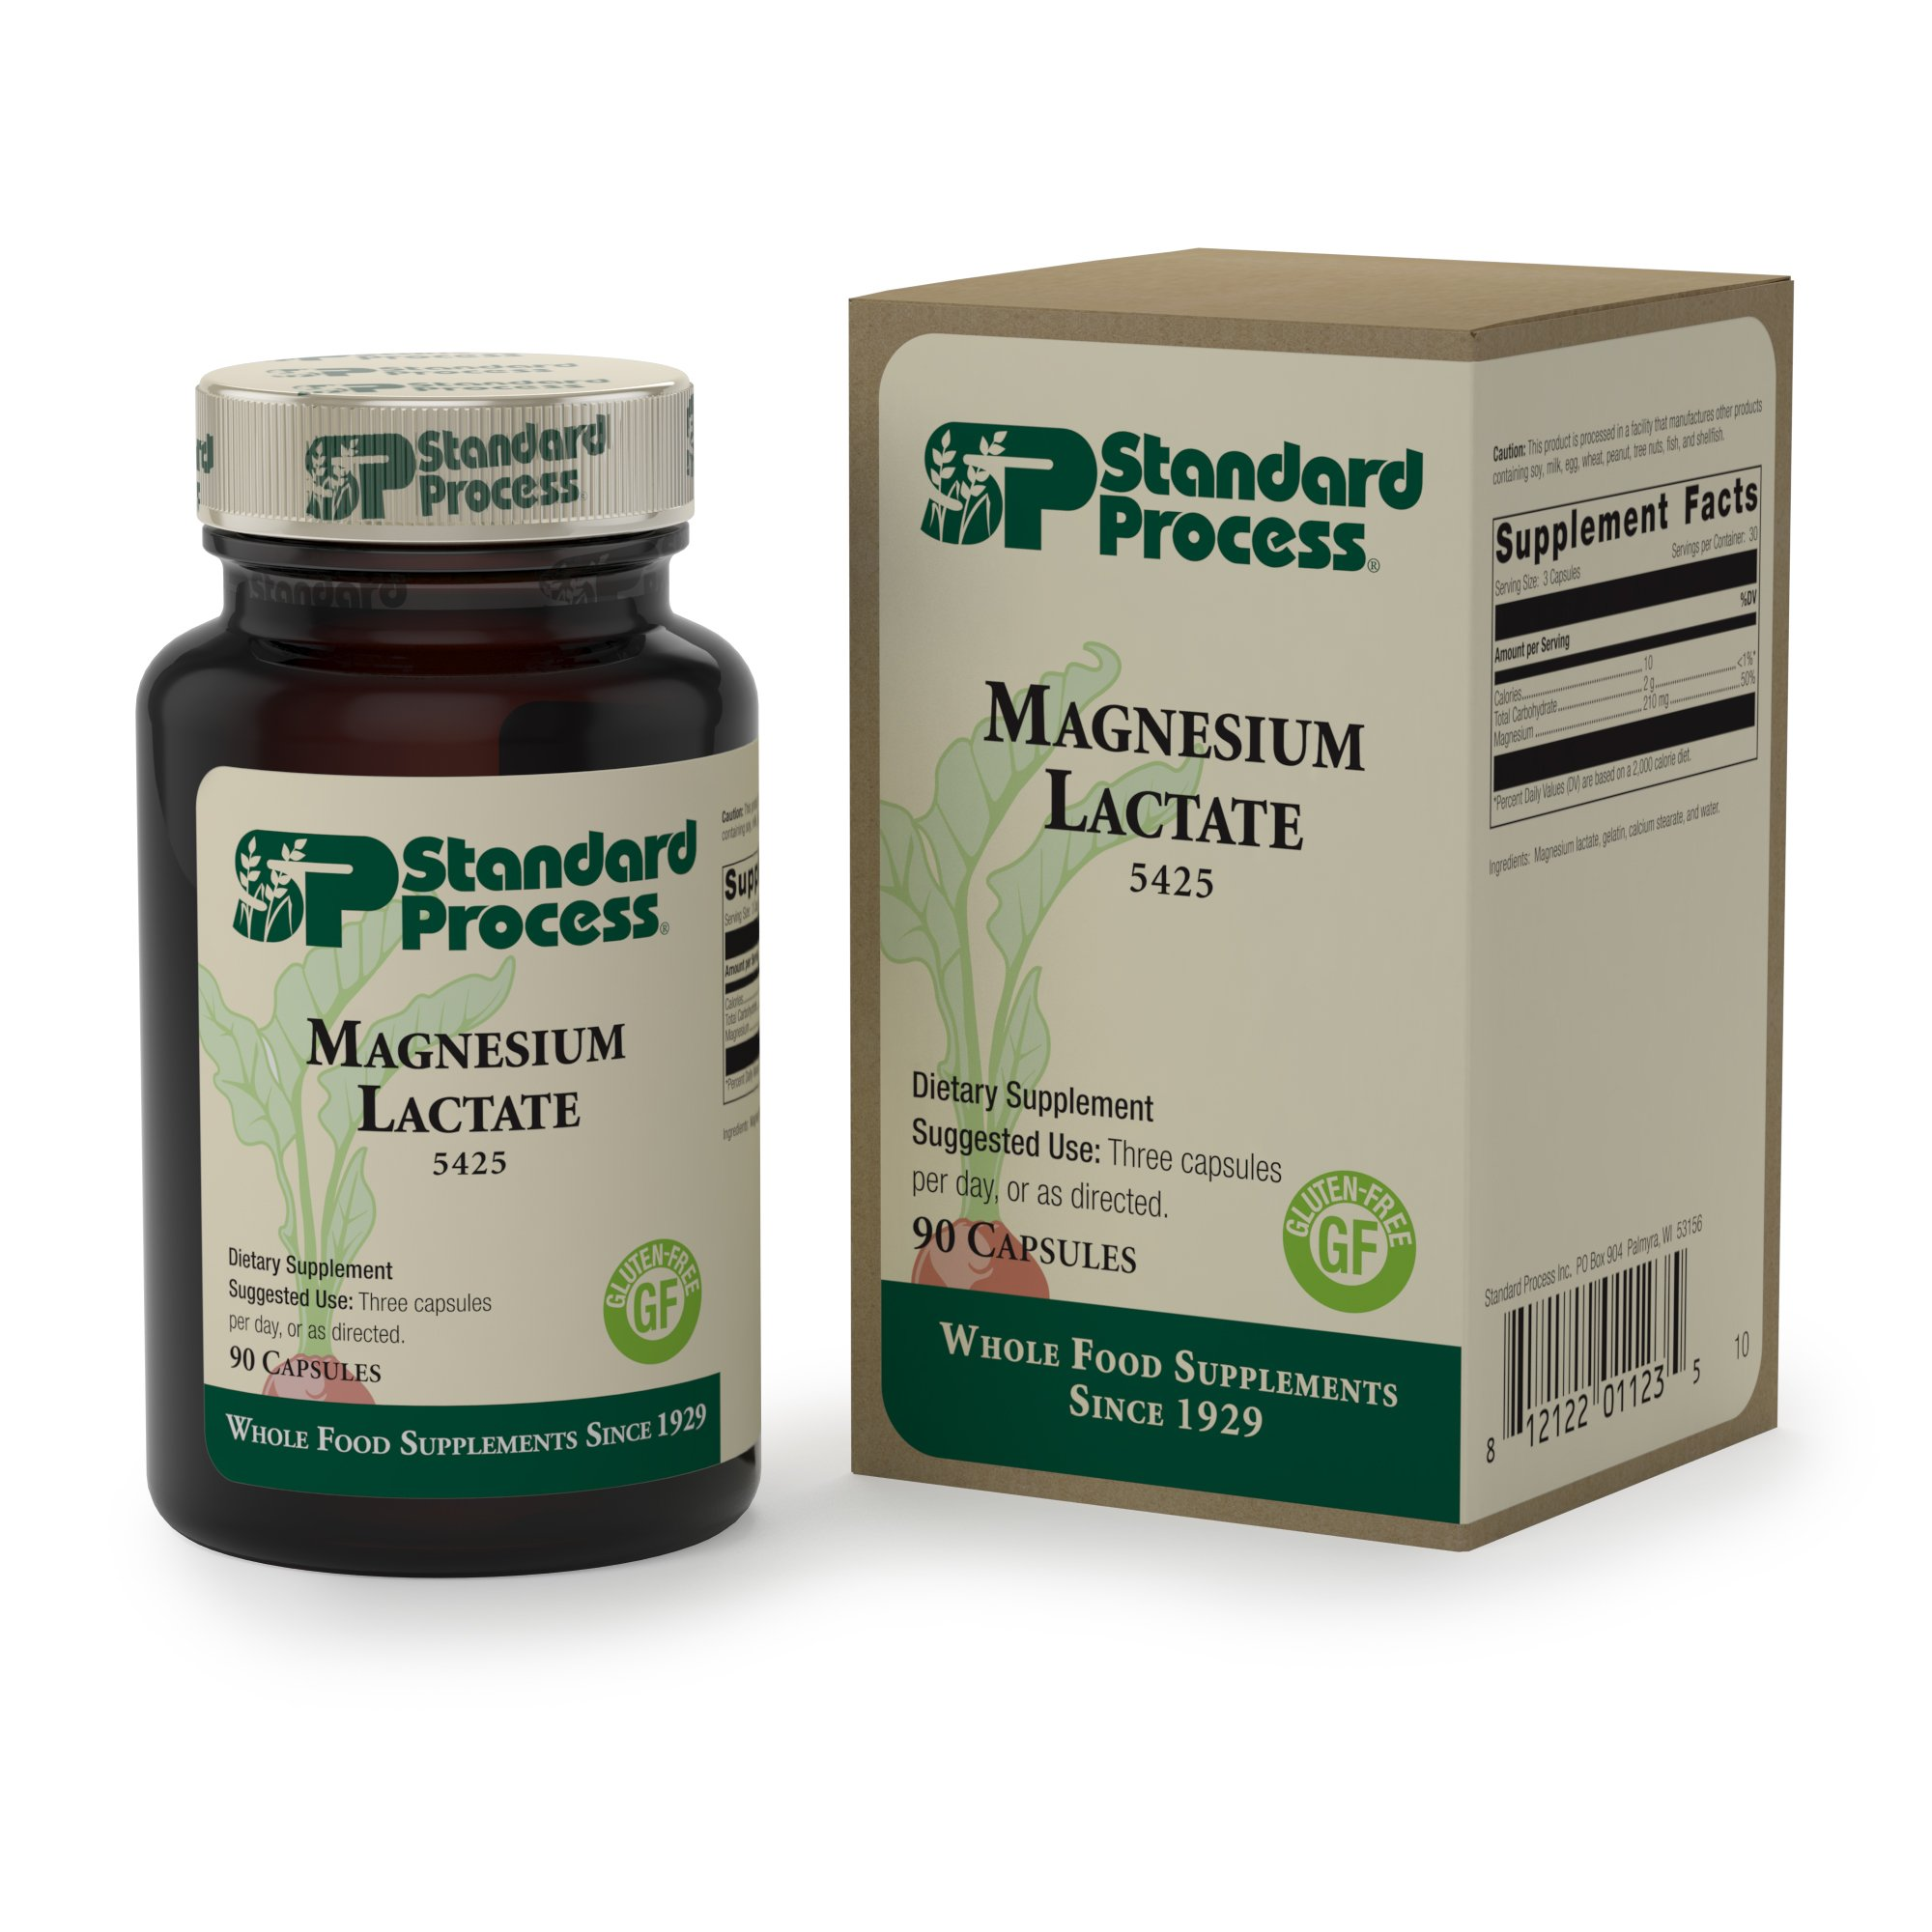 Standard Process - Magnesium Lactate - Magnesium Supplement, Supports Cellular Energy Production and Bone Formation